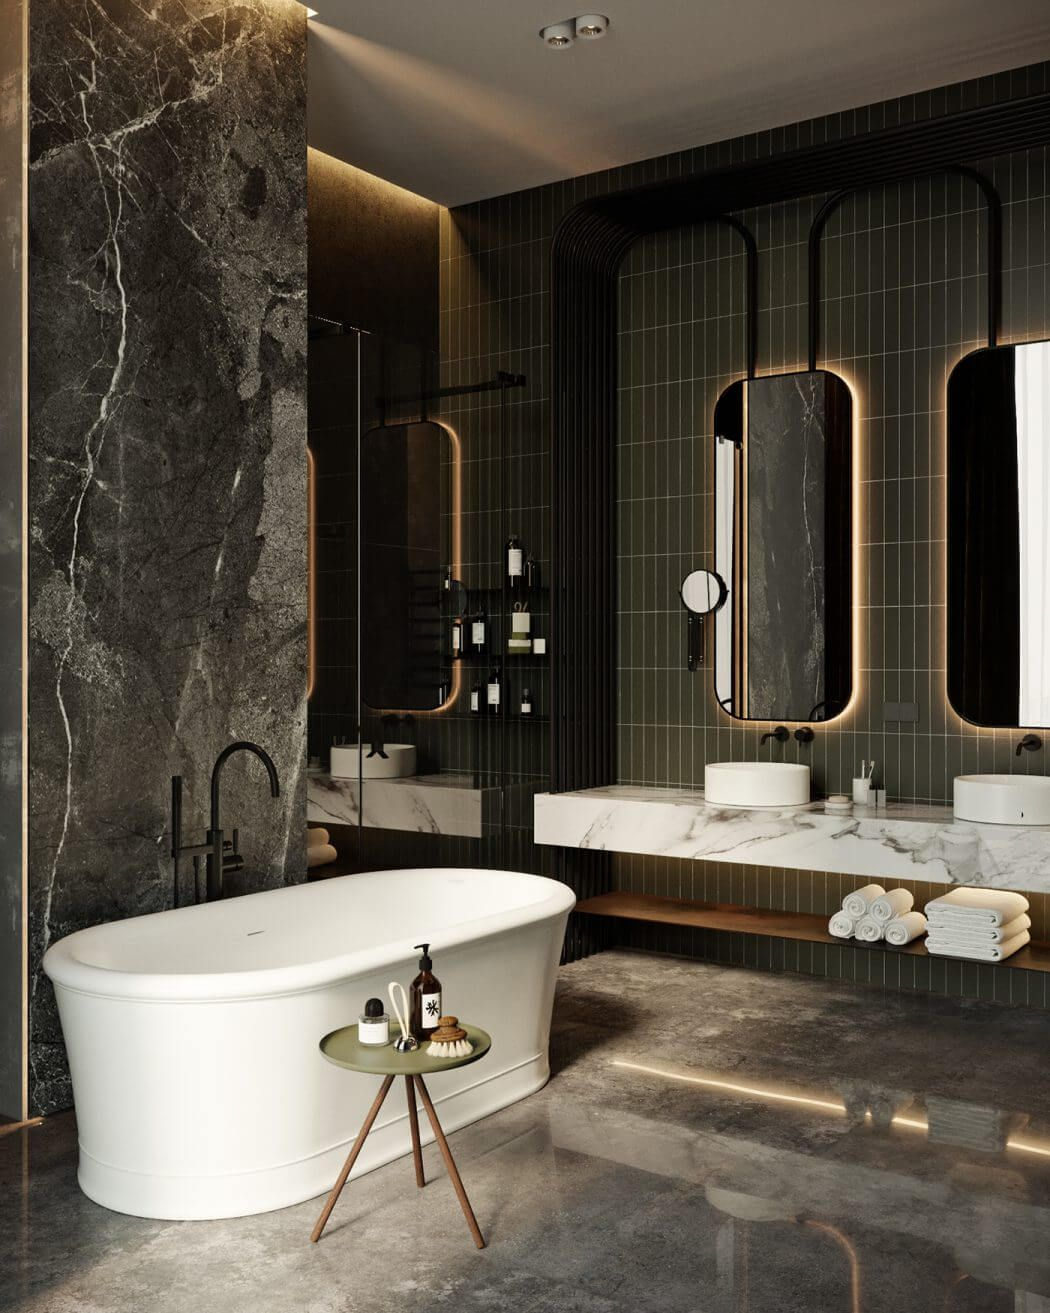 Inside luxury homes bathroom - Dark Moody Bathroom Designs That Impress